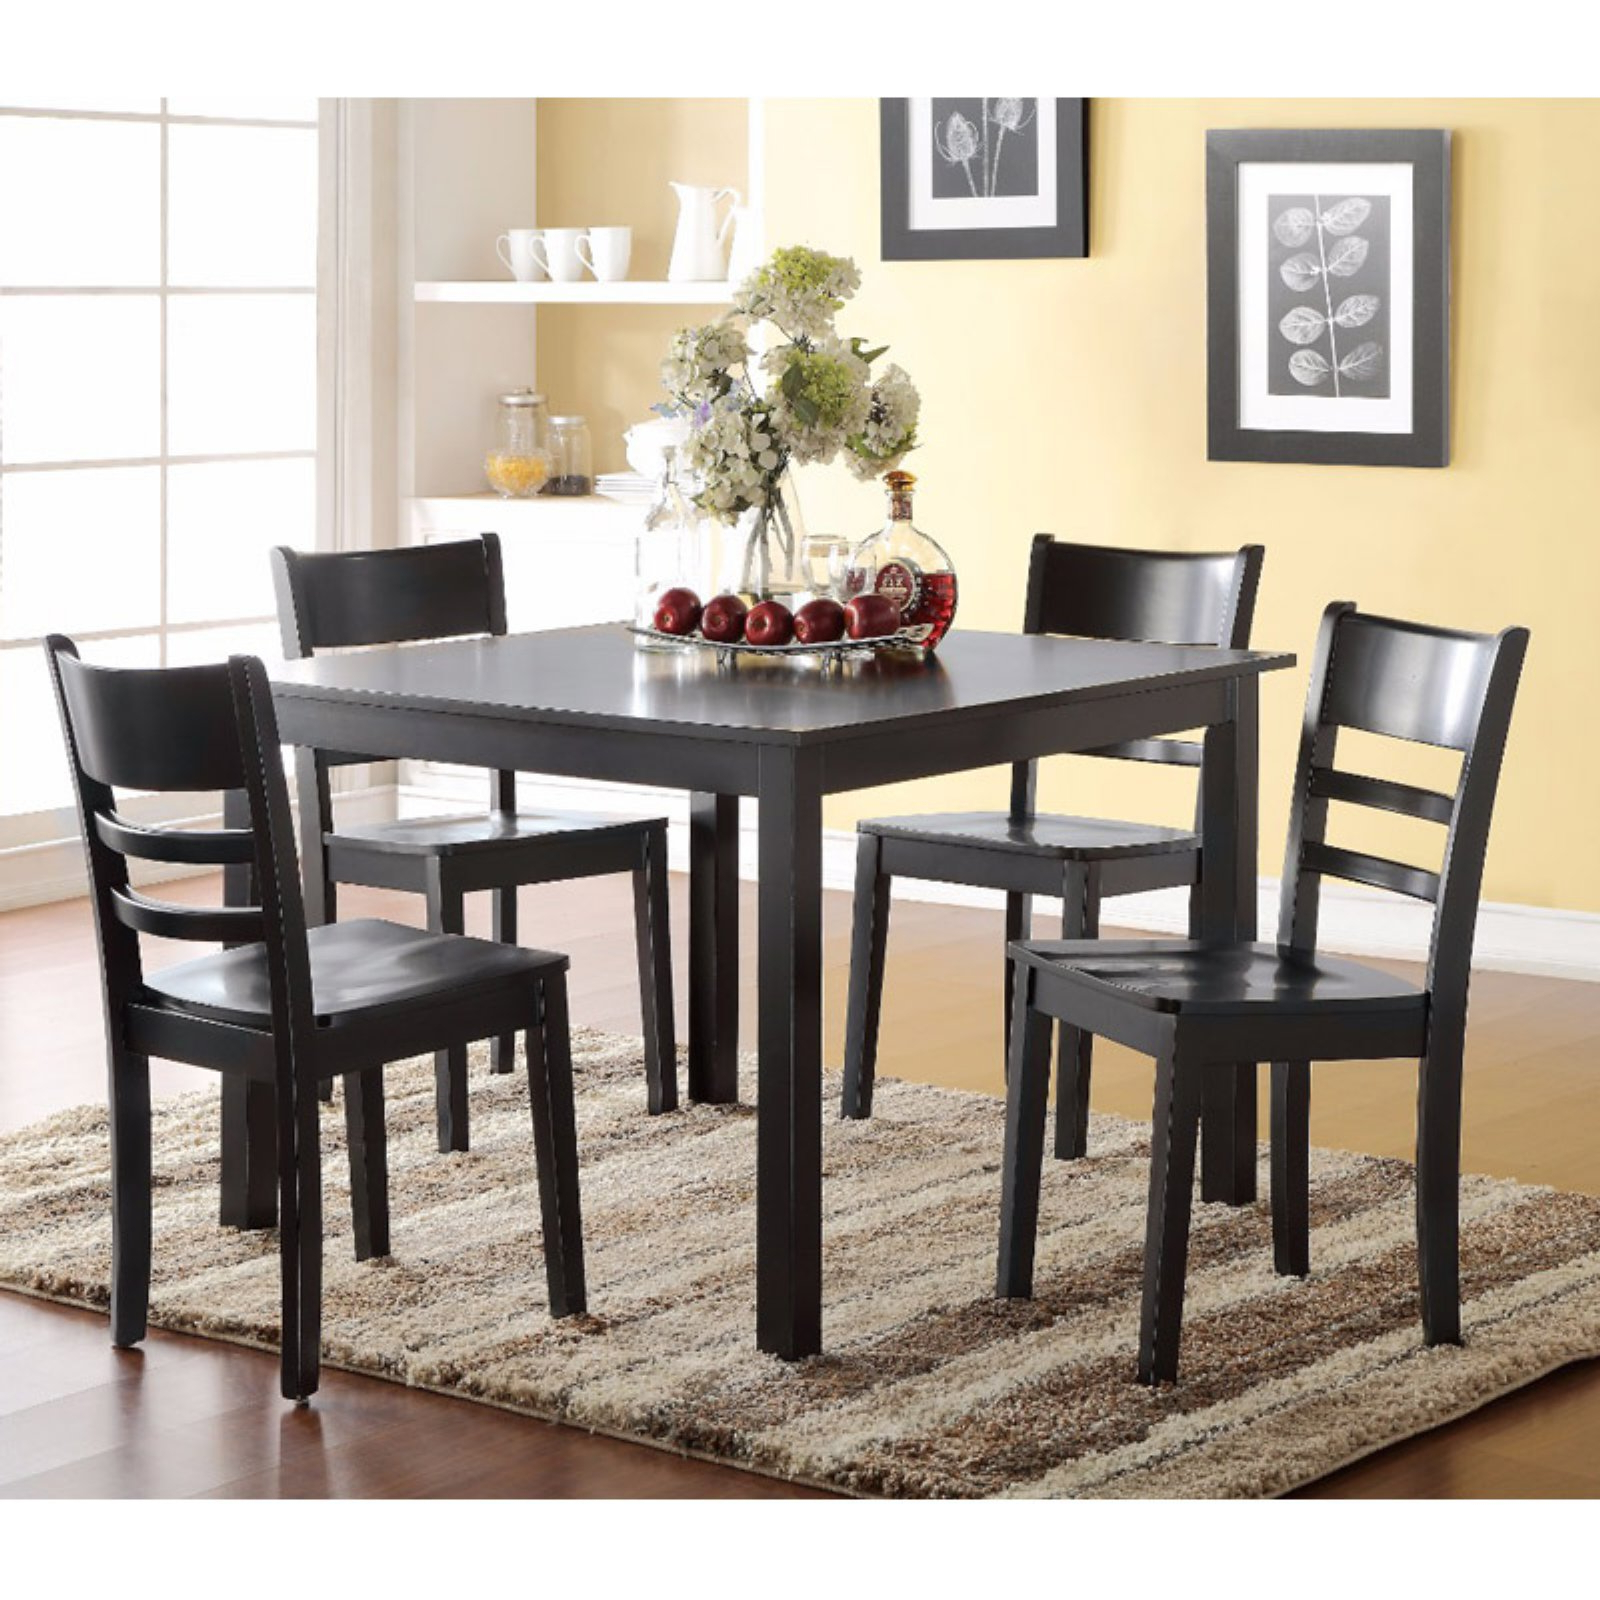 Benzara Gracious 5 Piece Square Dining Table Set In 2019 Regarding Popular Transitional 4 Seating Square Casual Dining Tables (View 5 of 30)